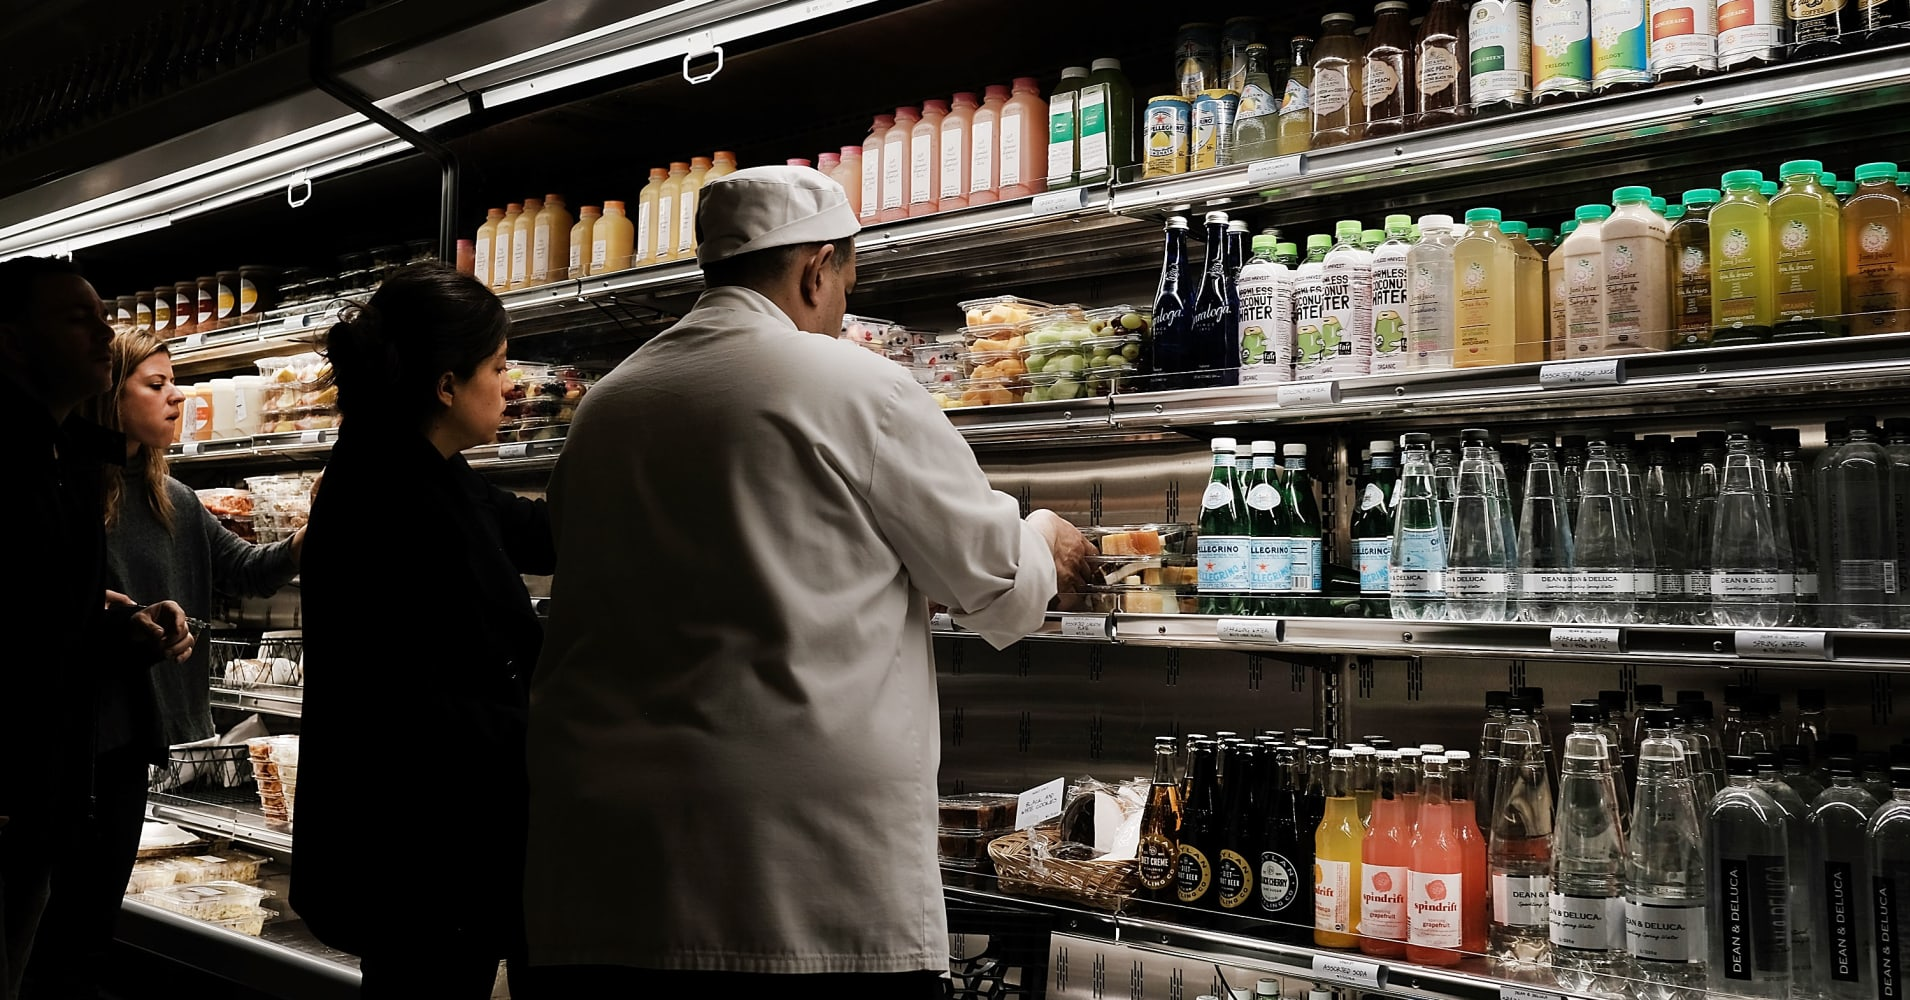 People shop in a Manhattan grocery store in New York, New York.